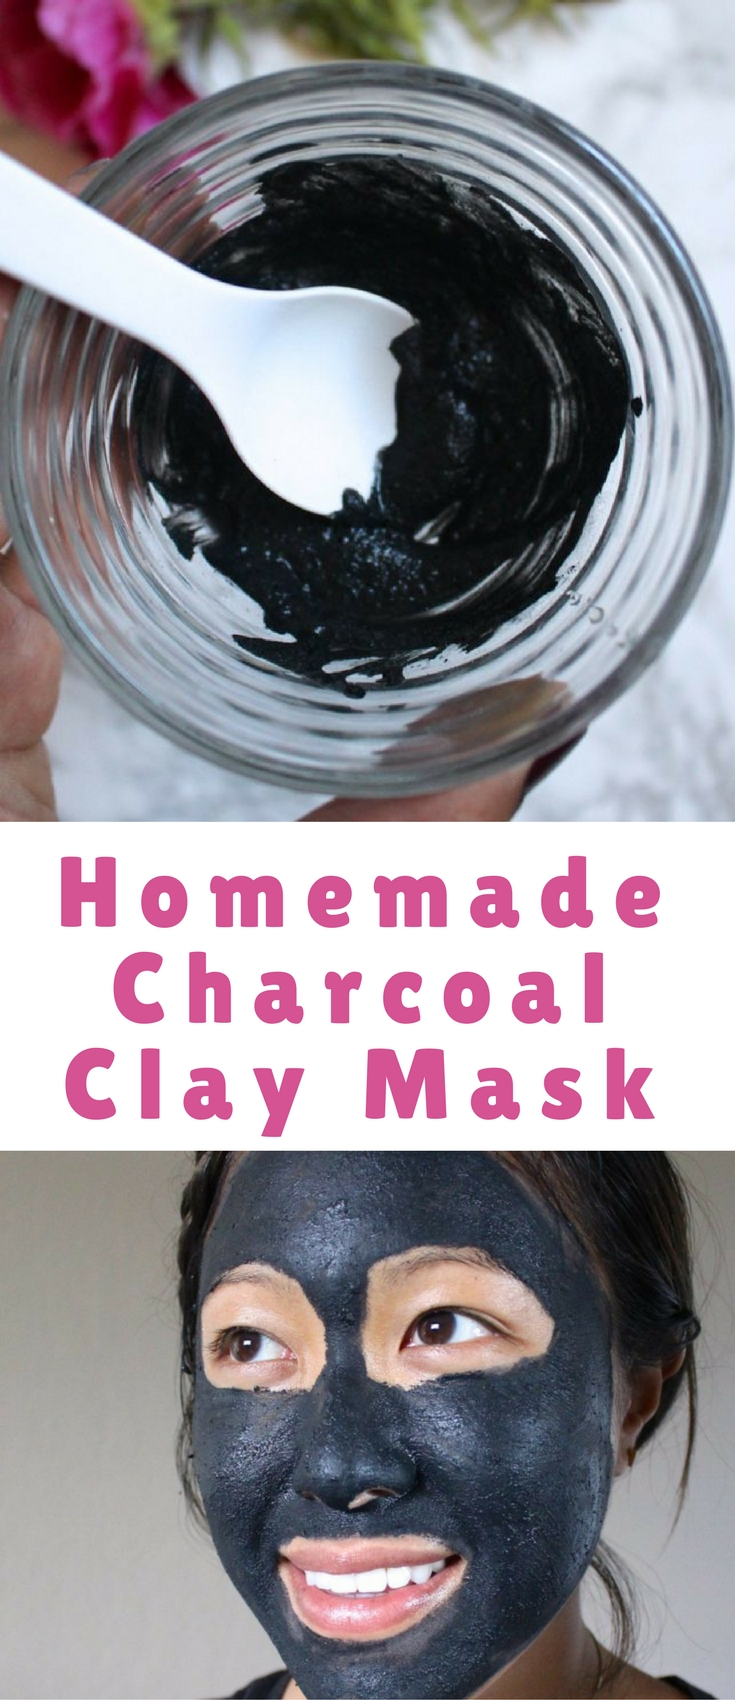 I only use charcoal mask twice a week, and I actually look forward to the days I do them because I'm obsessed with the way it makes my skin feel afterwards. It's such a simple routine that yields really great results. My skin looks so much better, clearer, with reduced pore sizes and blackheads.